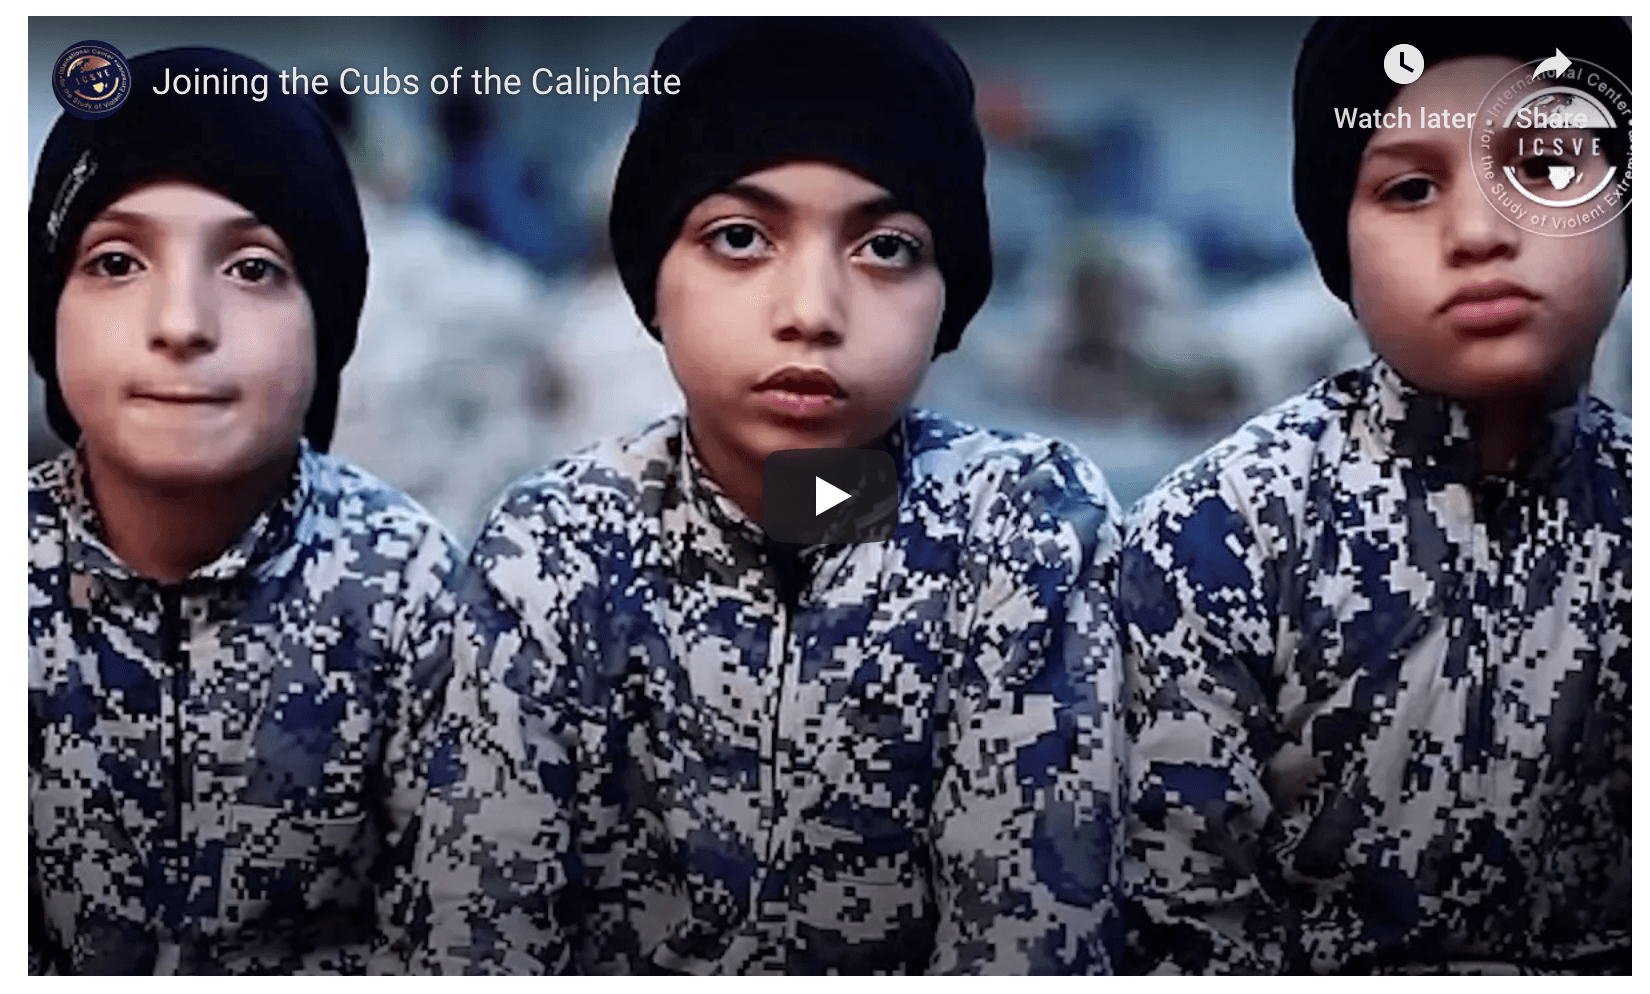 Boys Without Fathers And The Islamic State